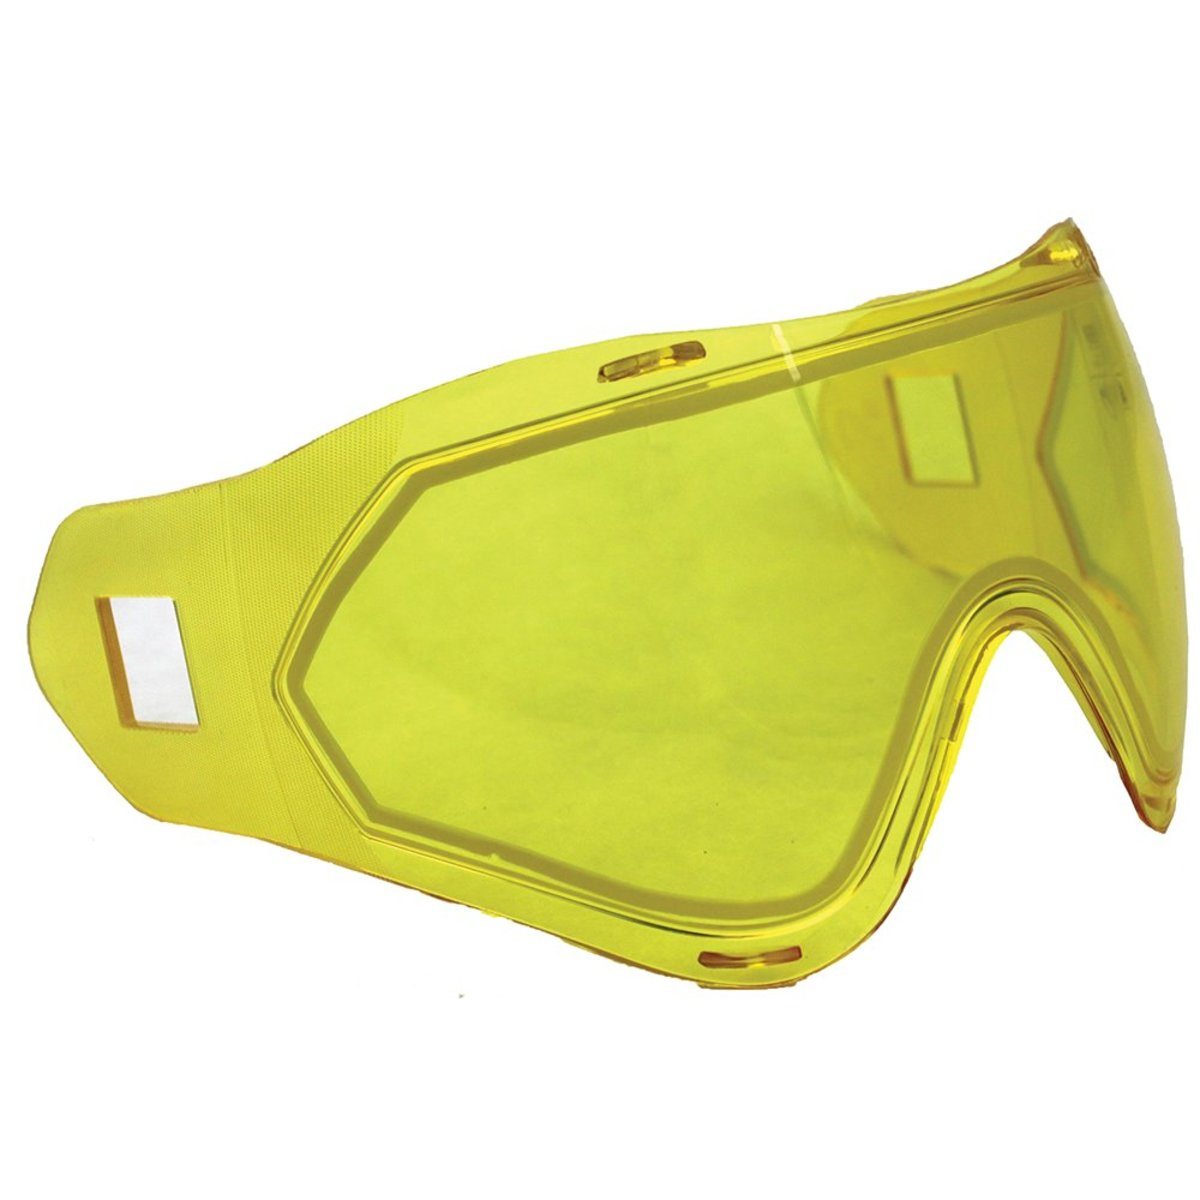 View larger image of Valken Profit Thermal Goggle Lens